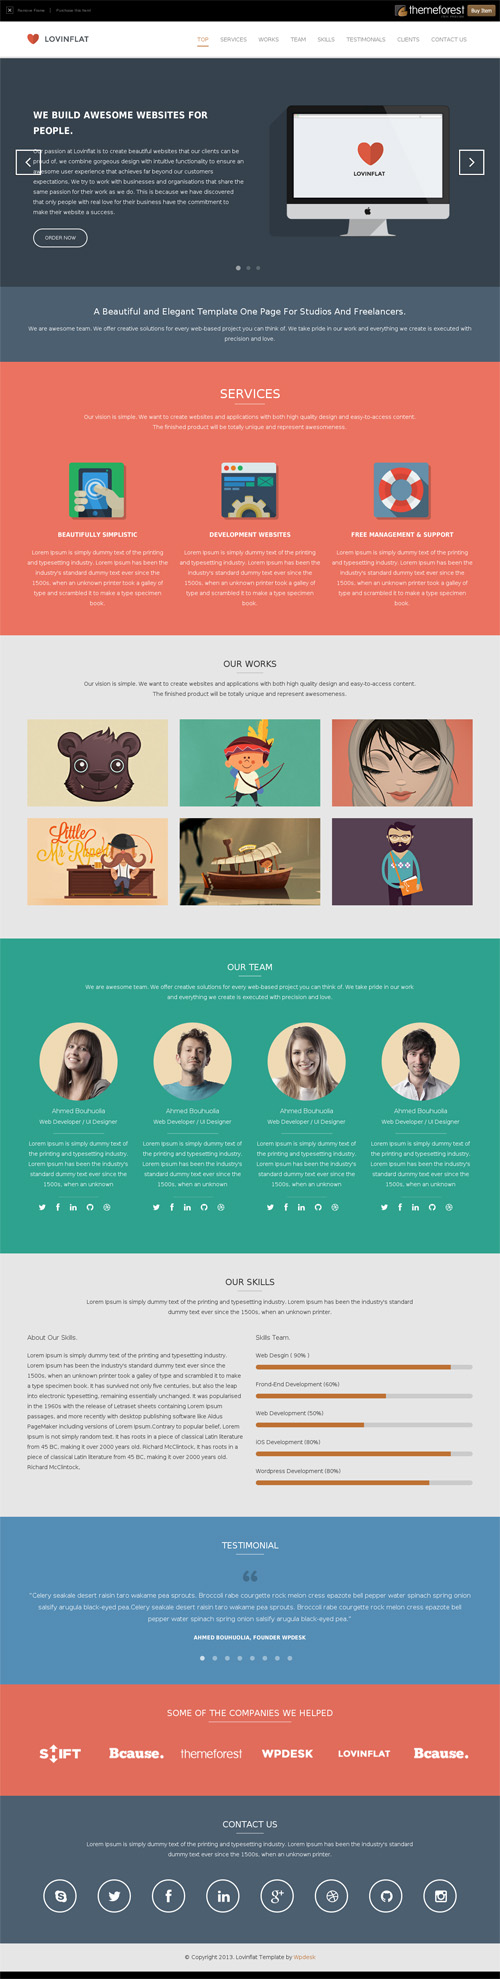 responsive one page templates permium collection design